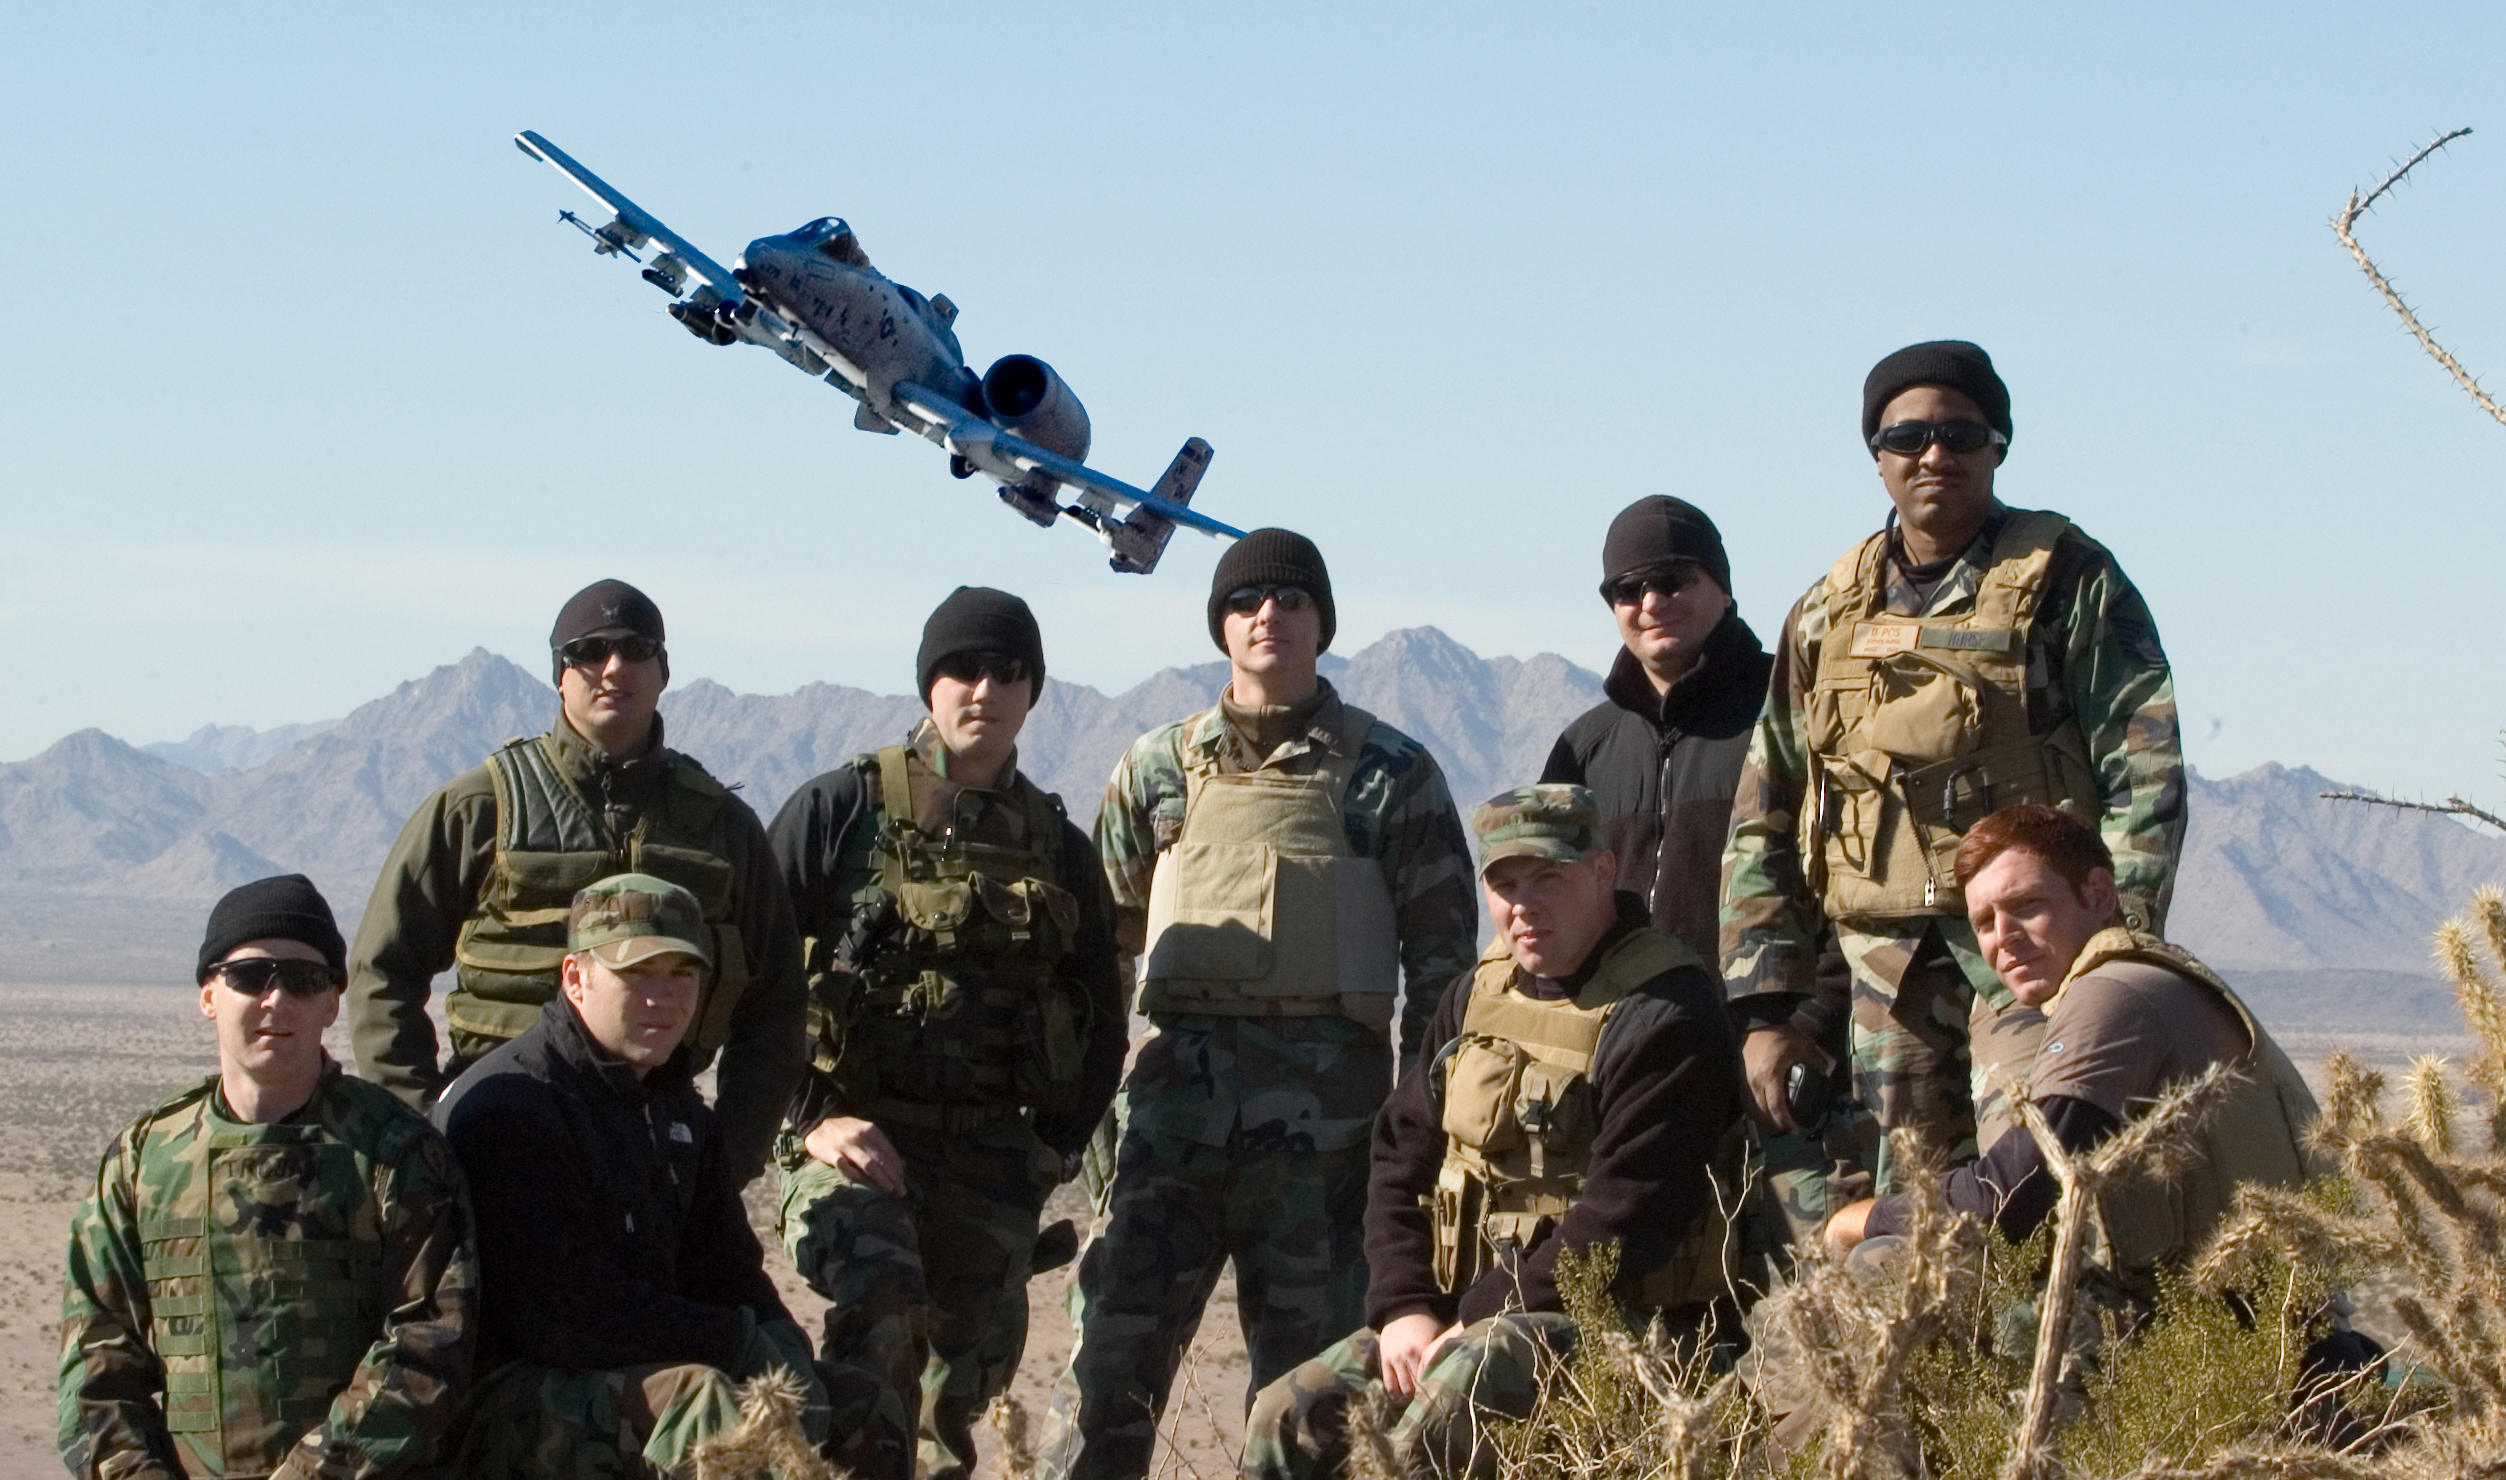 military photo with A-10 in the background